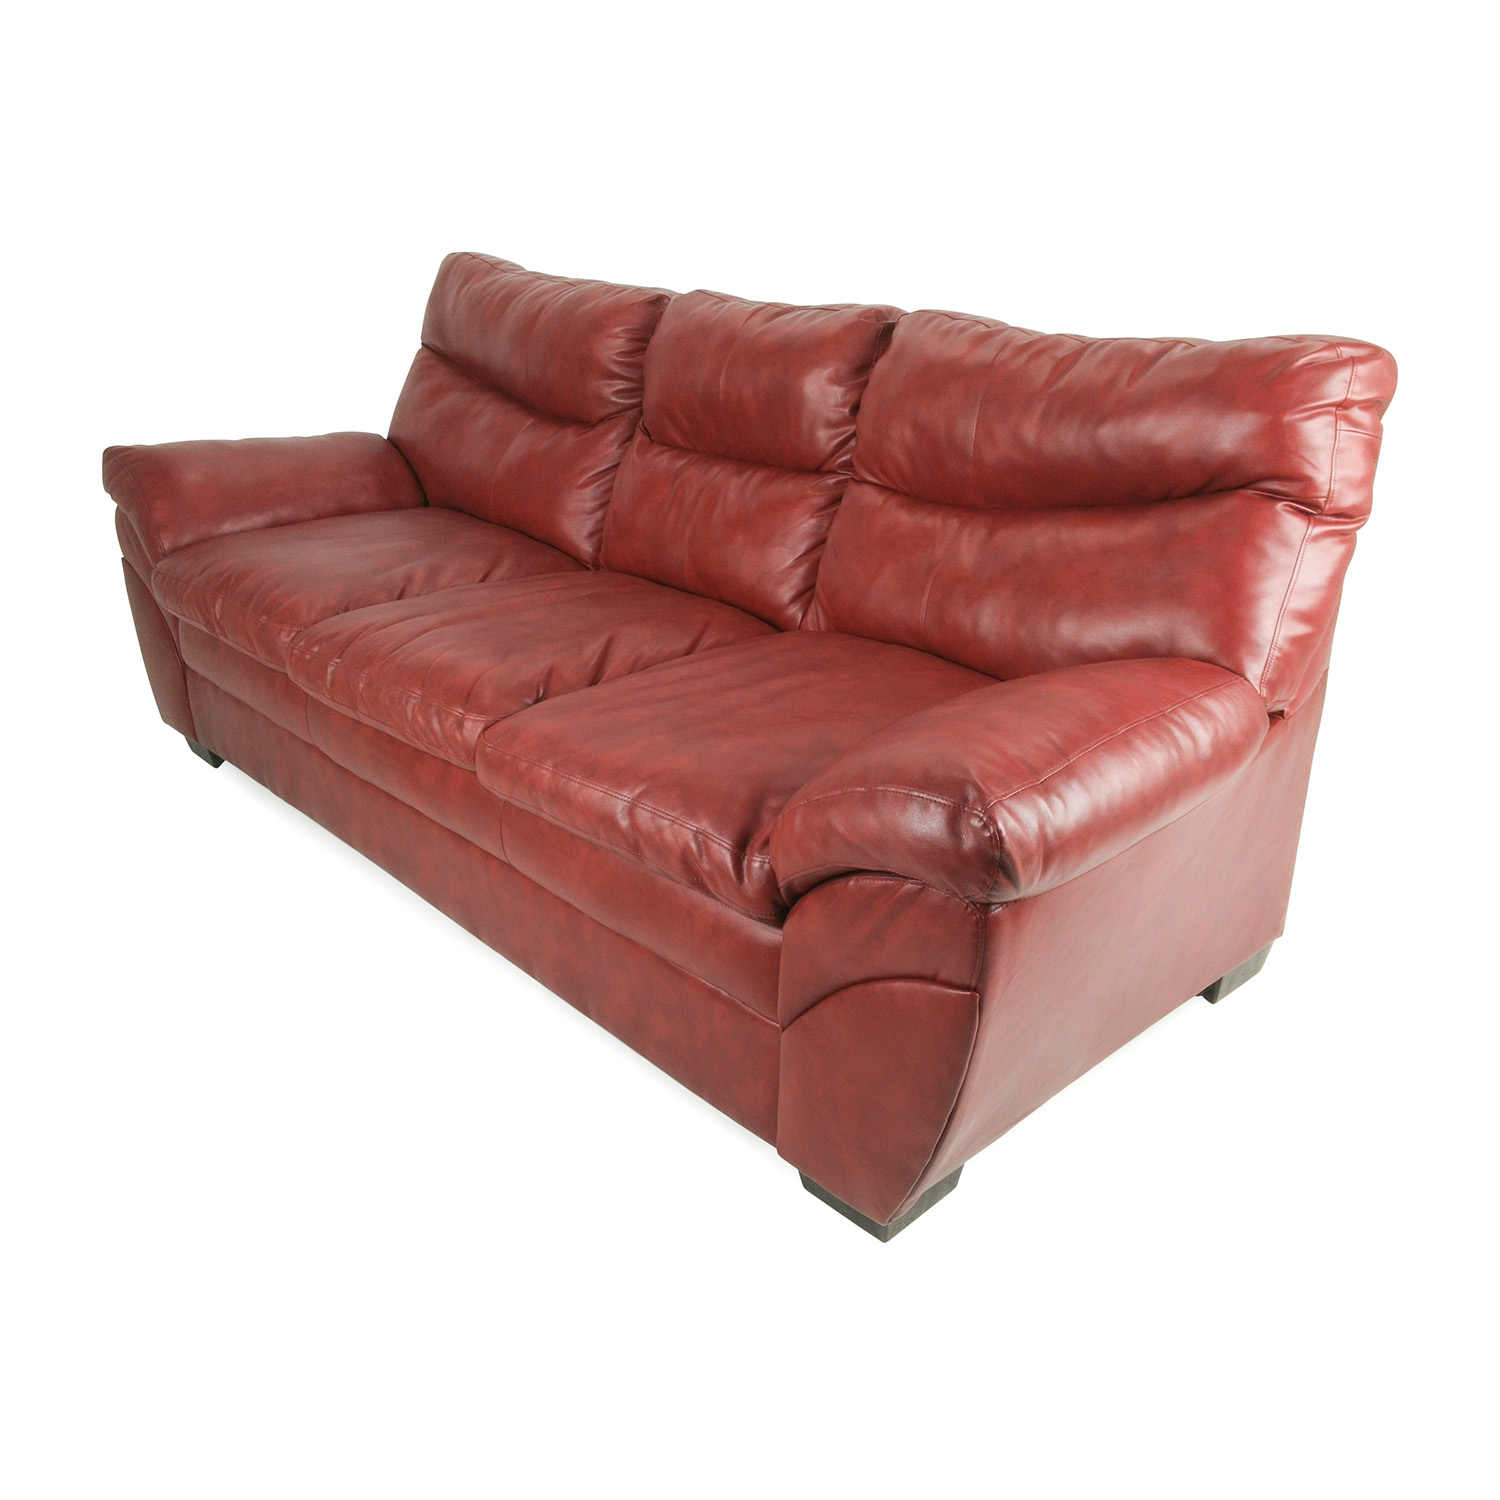 57% OFF Modern Red Leather Sofa Sofas